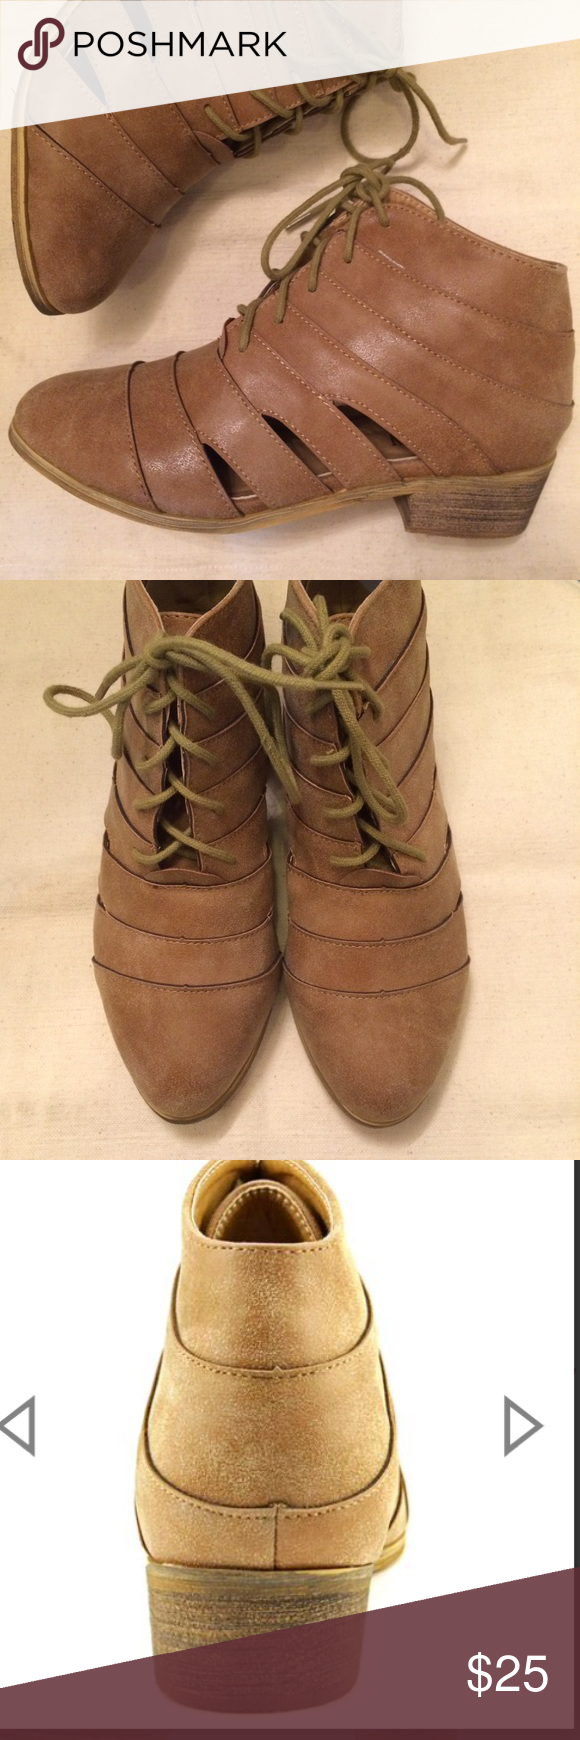 🍂🍁Cut-out Booties - Tan Brand new, never worn! Dust bags/wrapping  included, but no box. Synthetic upper. Fit TTS, great cut out and lace-up style. AXNY Shoes Ankle Boots & Booties